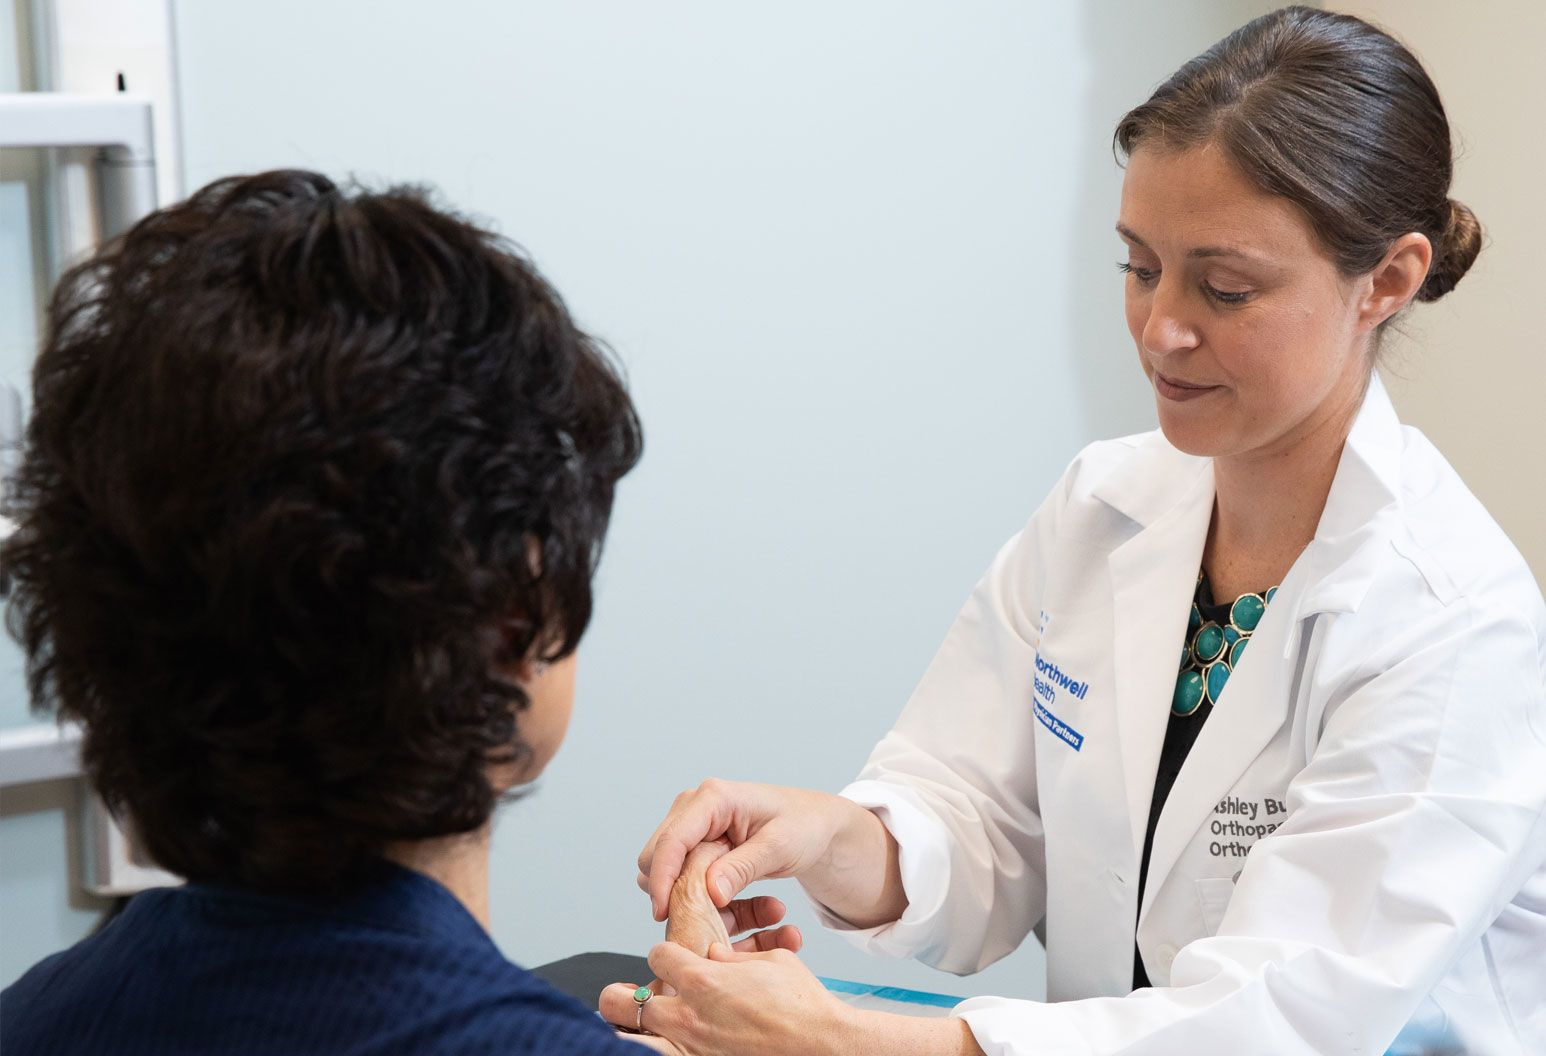 A female doctor examines a female patient's hand. The doctor has brown hair pulled back in a bun and wears a Northwell branded white coat.